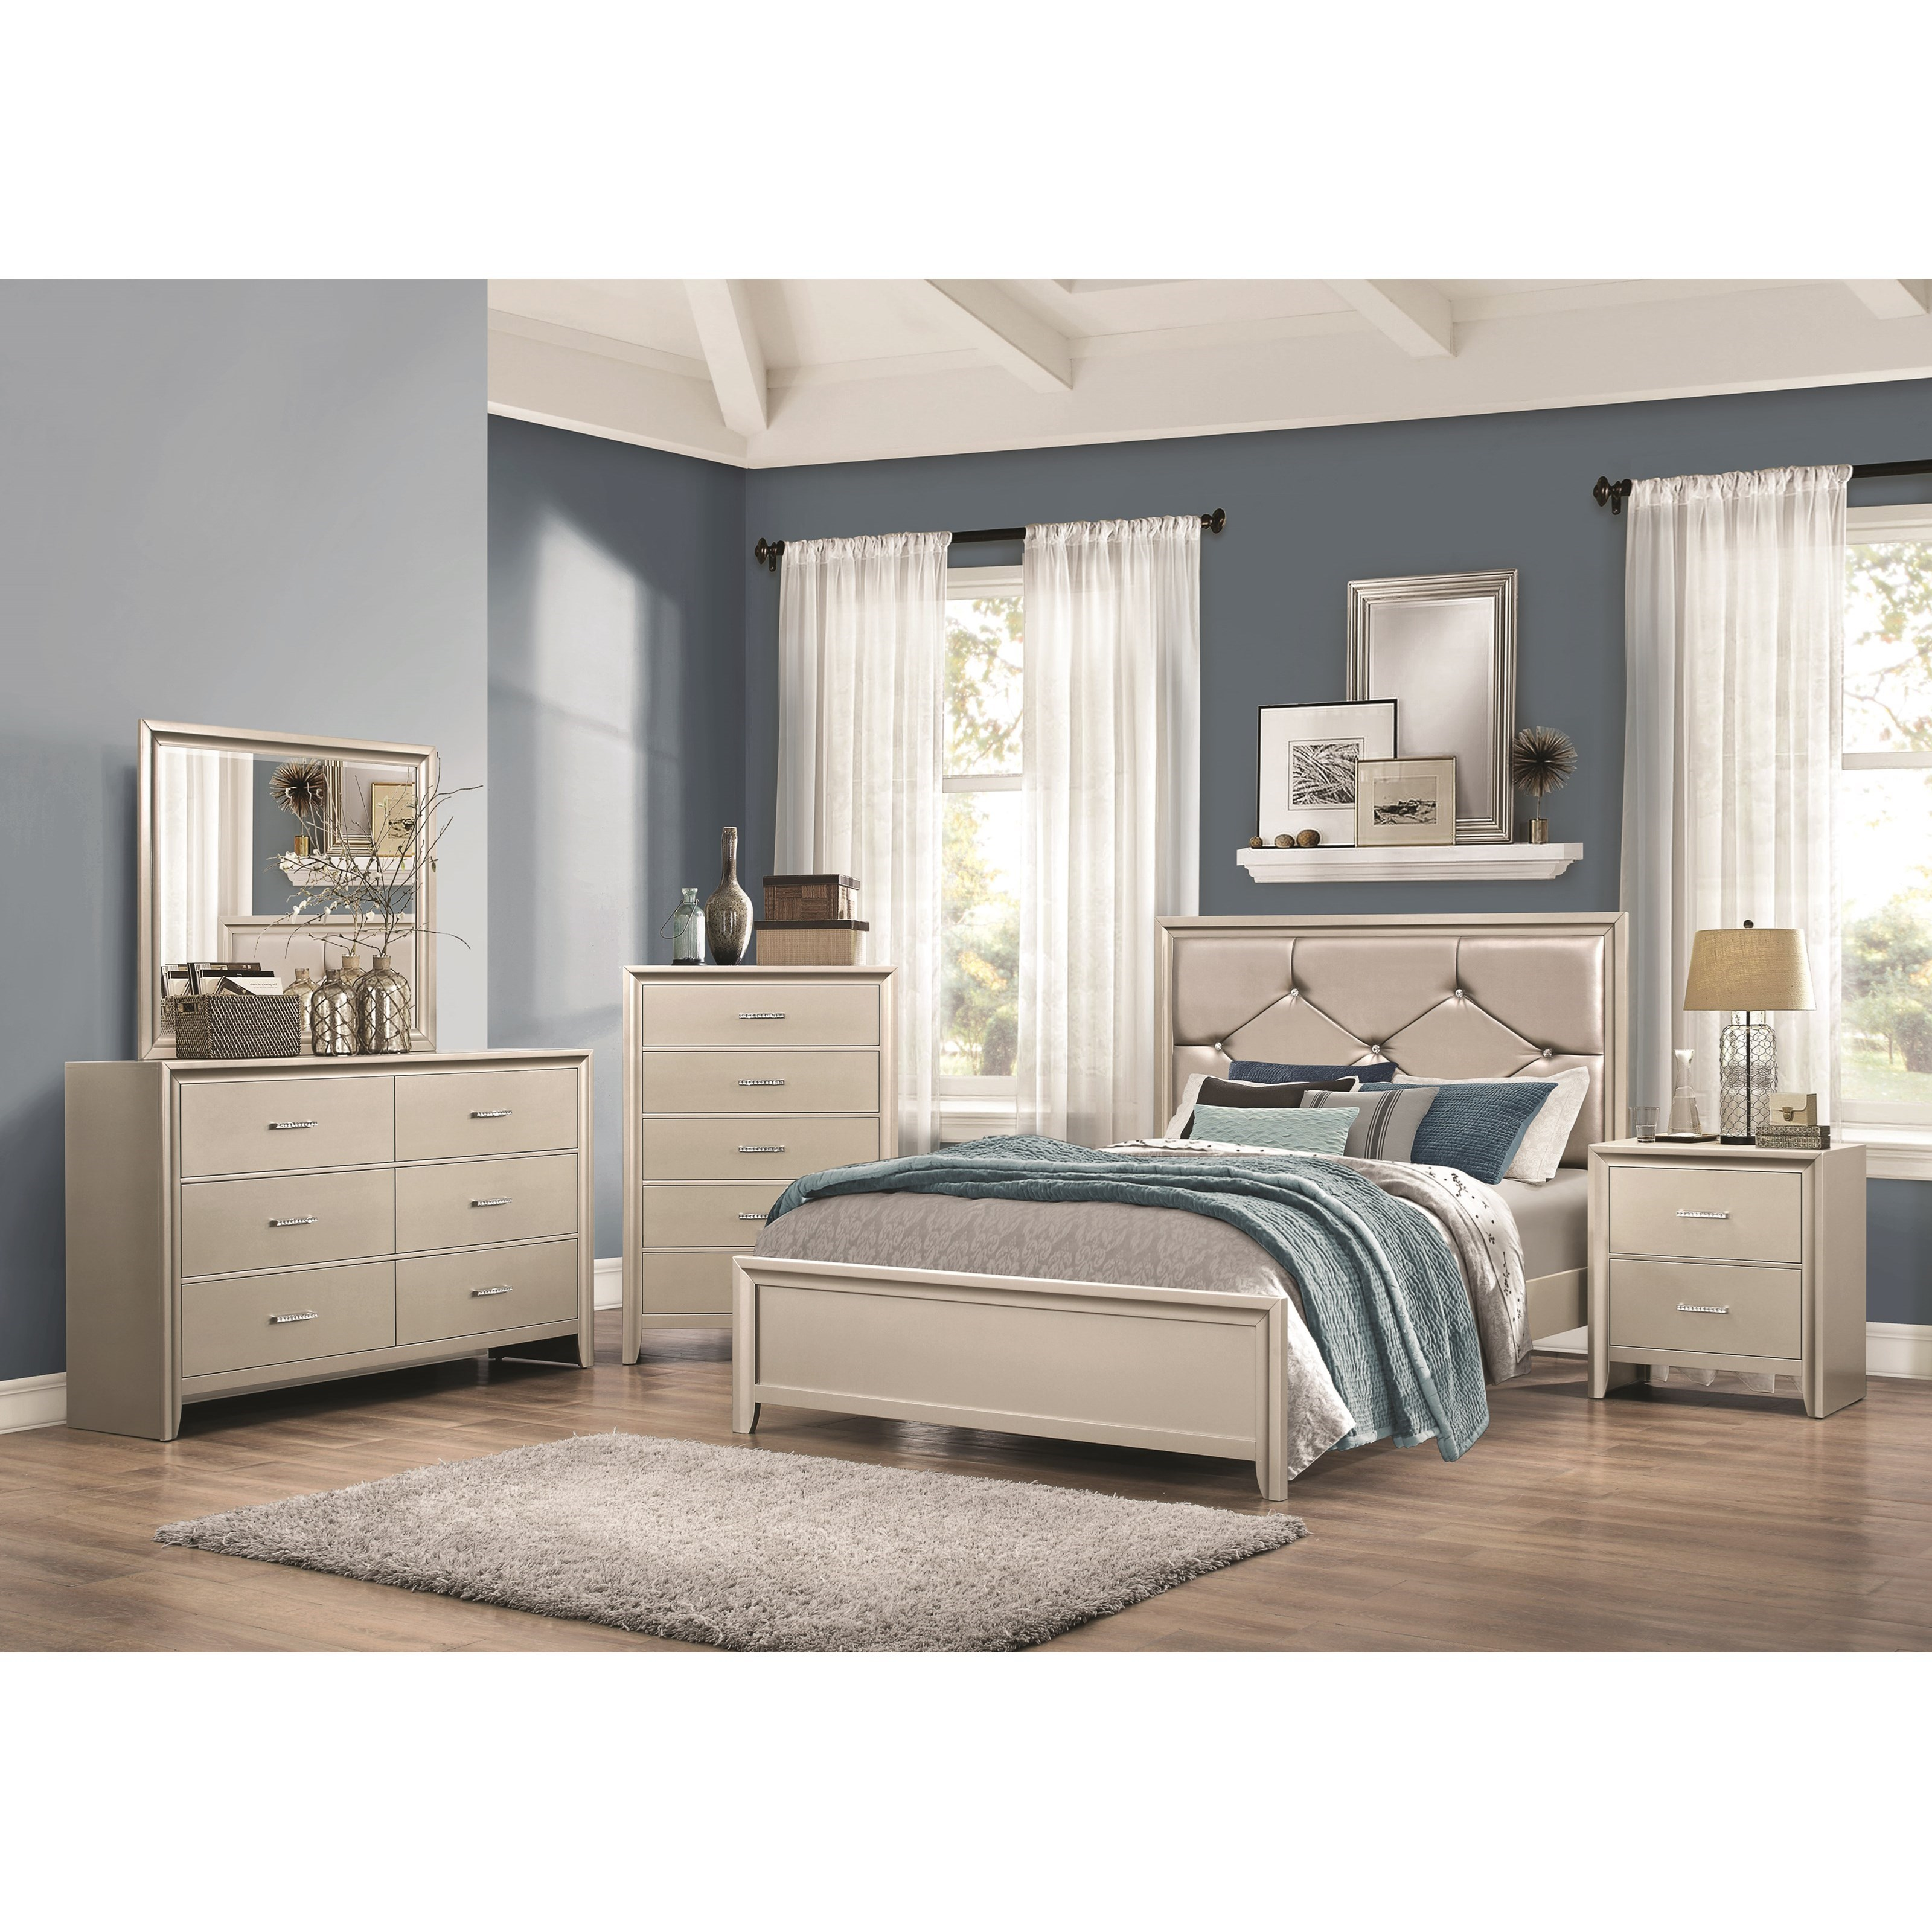 Coaster Lana Full Bedroom Group - Item Number: 205180 F Bedroom Group